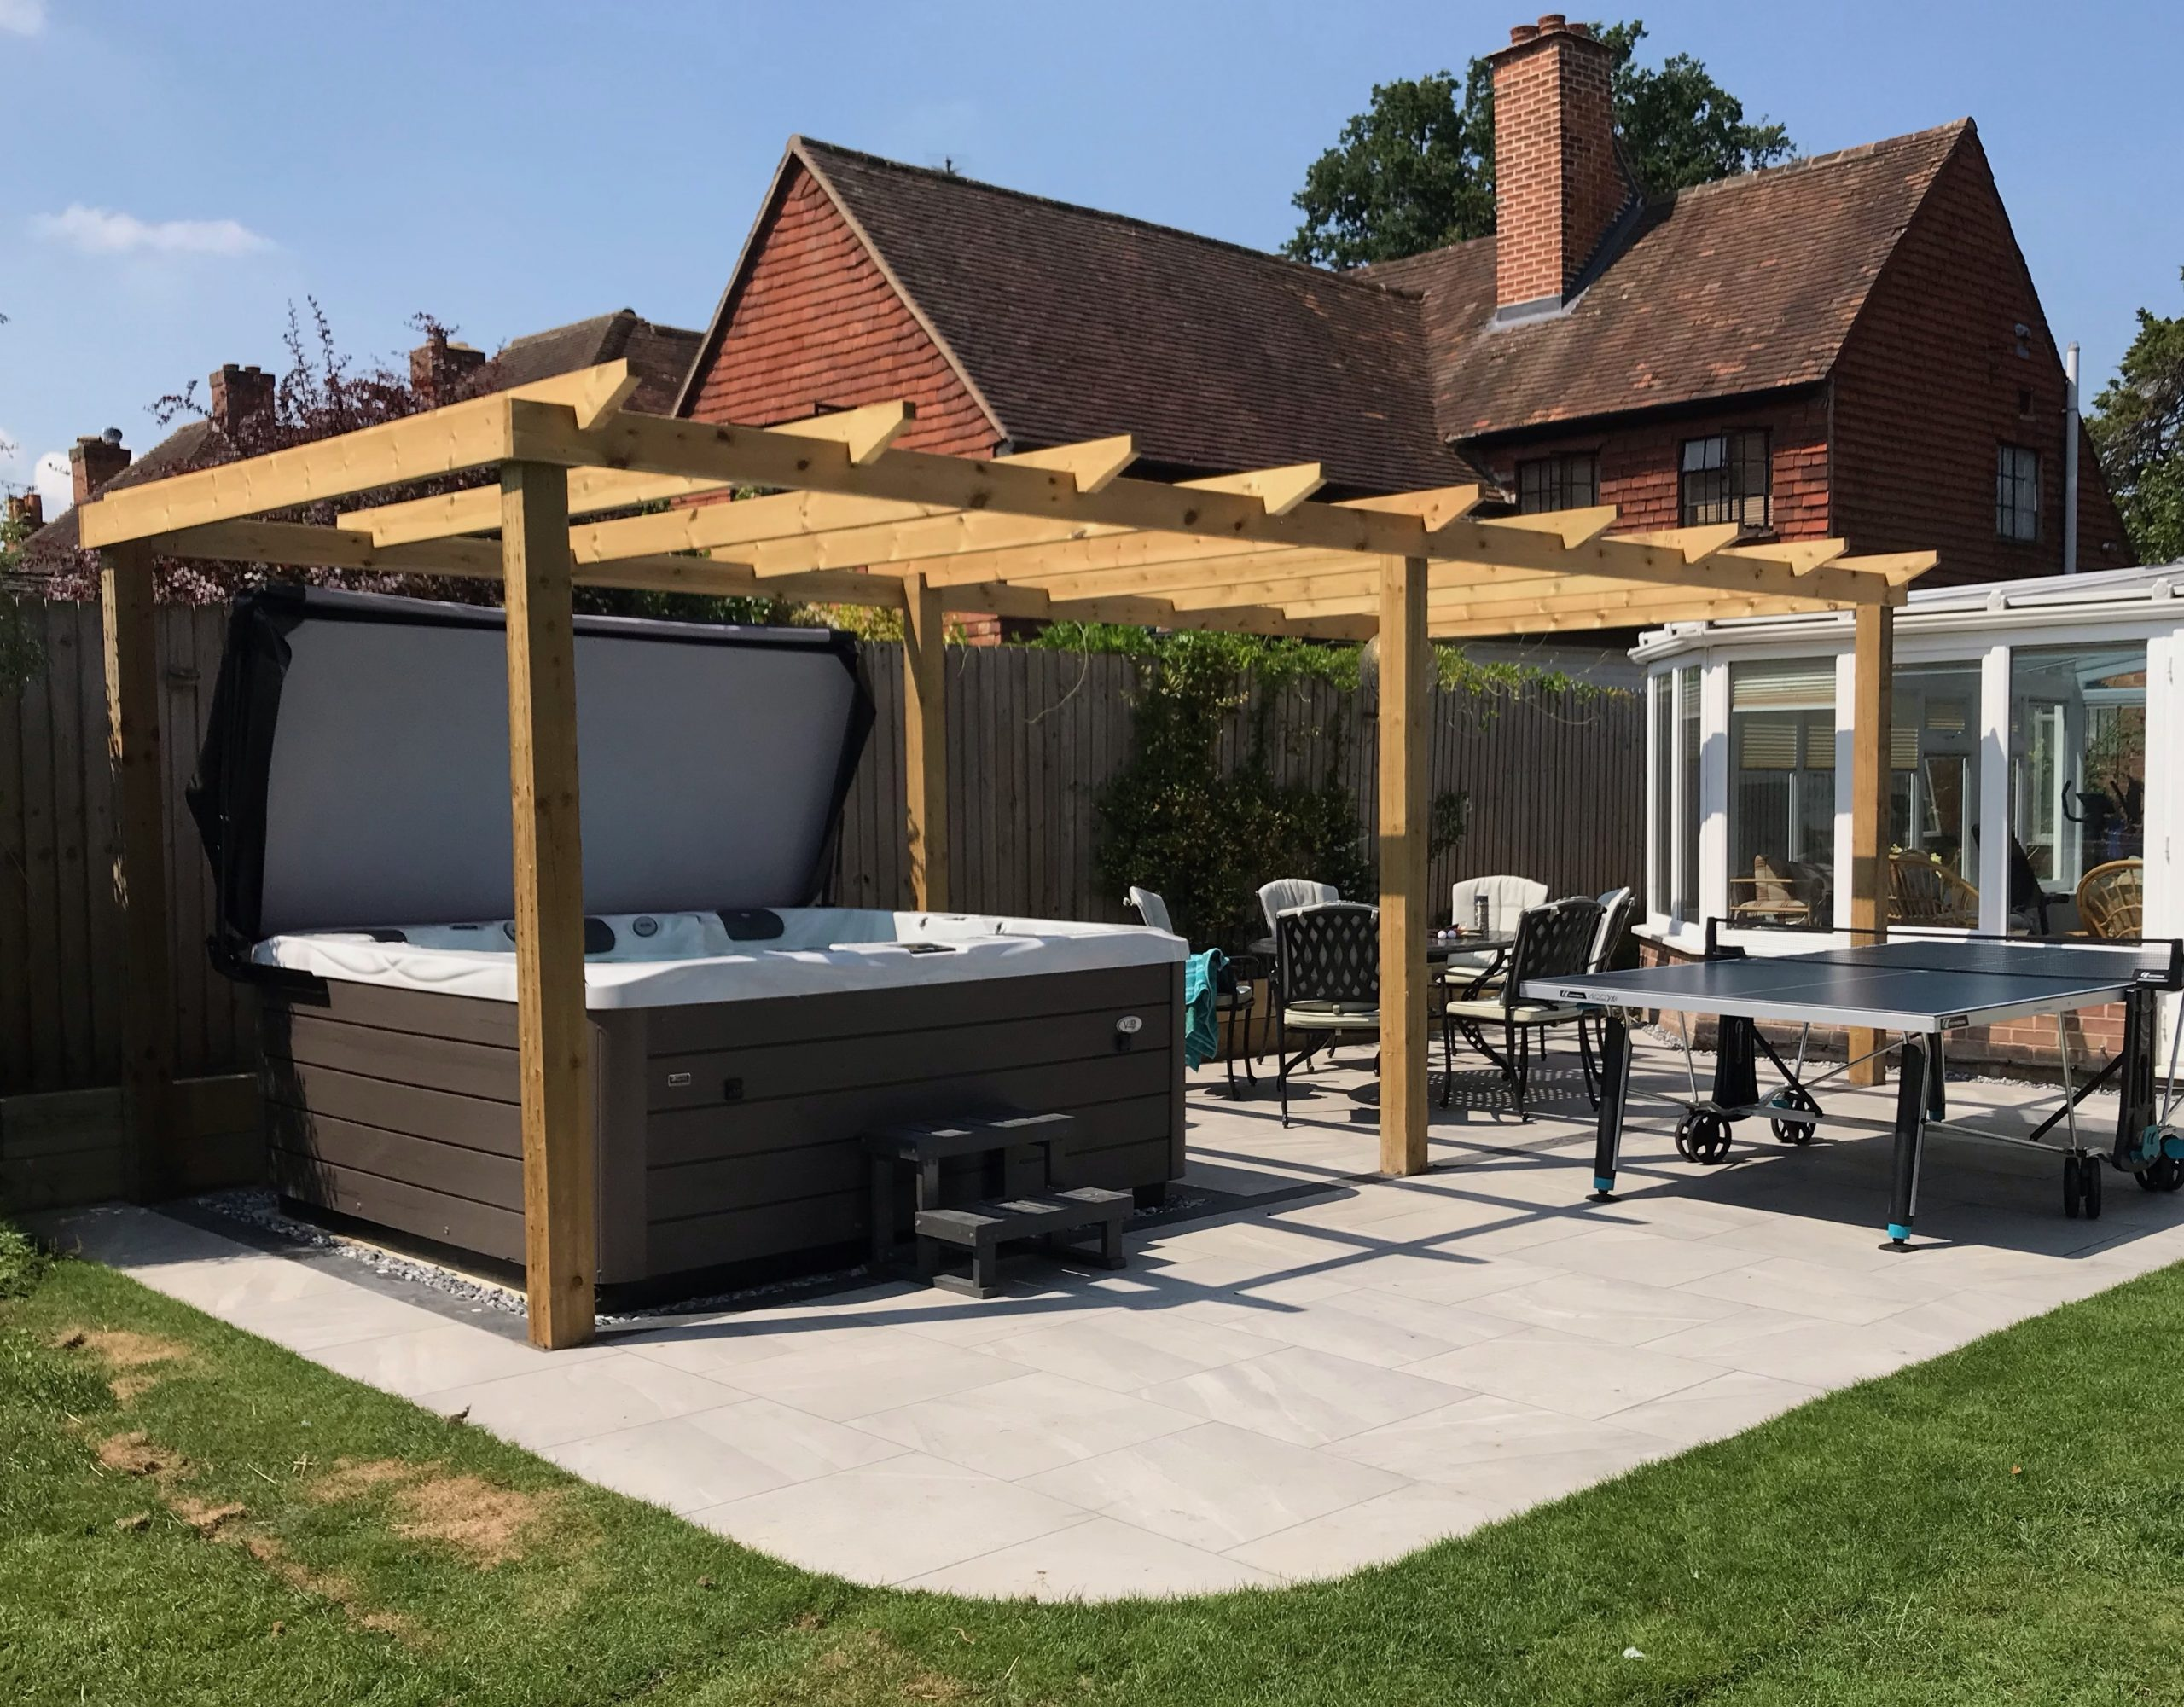 Hot Tubs Surrey, Hot Tubs Hampshire, Hot Tubs Middlesex